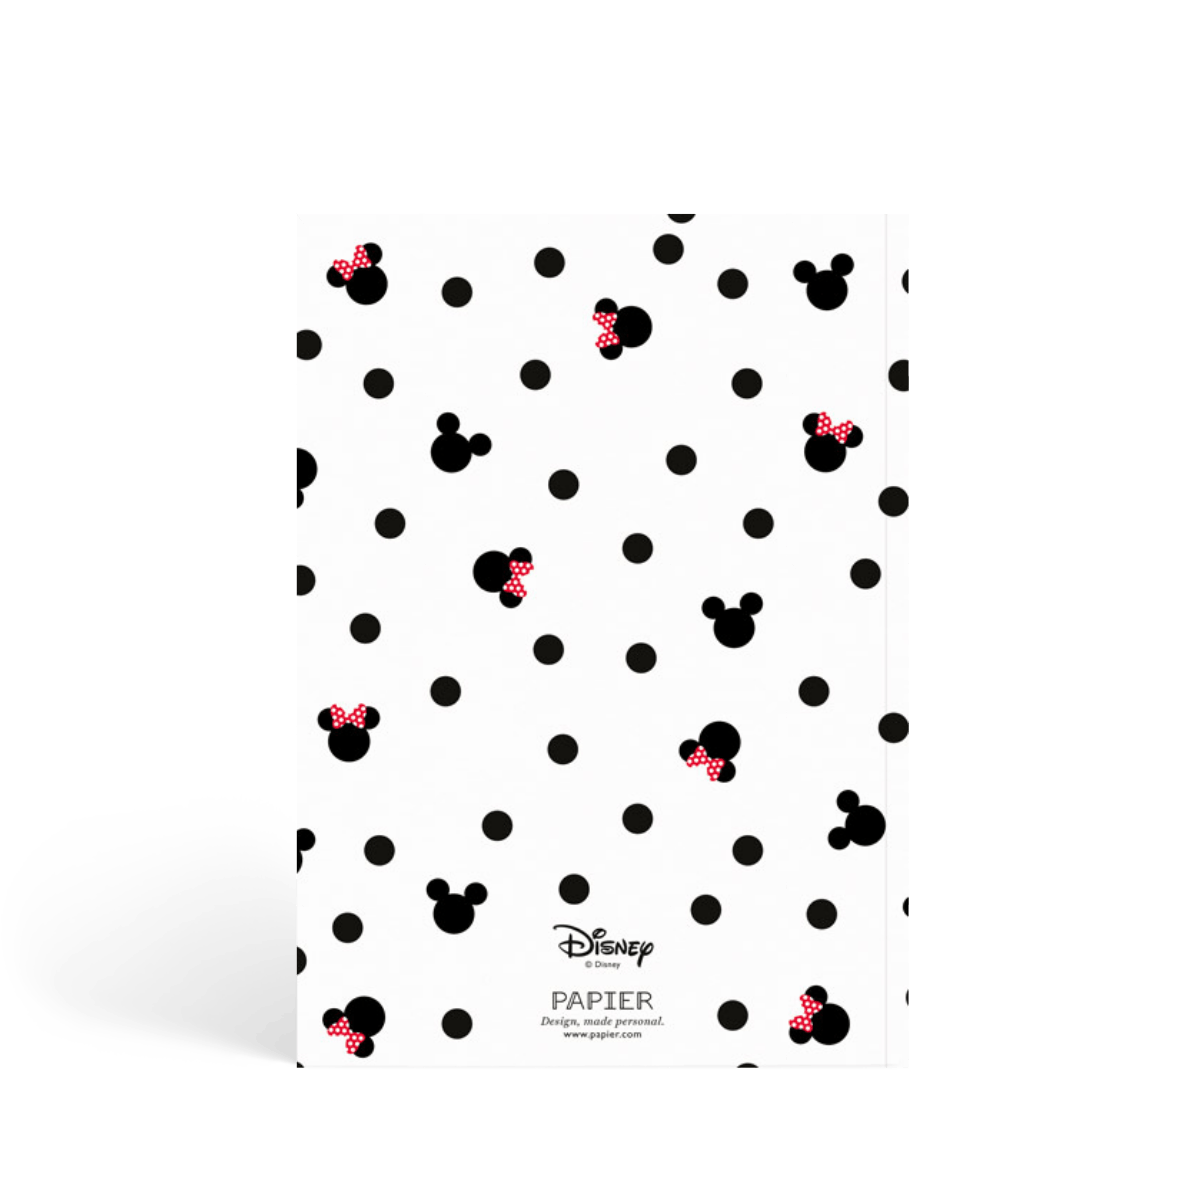 Https%3a%2f%2fwww.papier.com%2fproduct image%2f55814%2f5%2fmickey minnie mouse 13404 rueckseite 1542299824.png?ixlib=rb 1.1